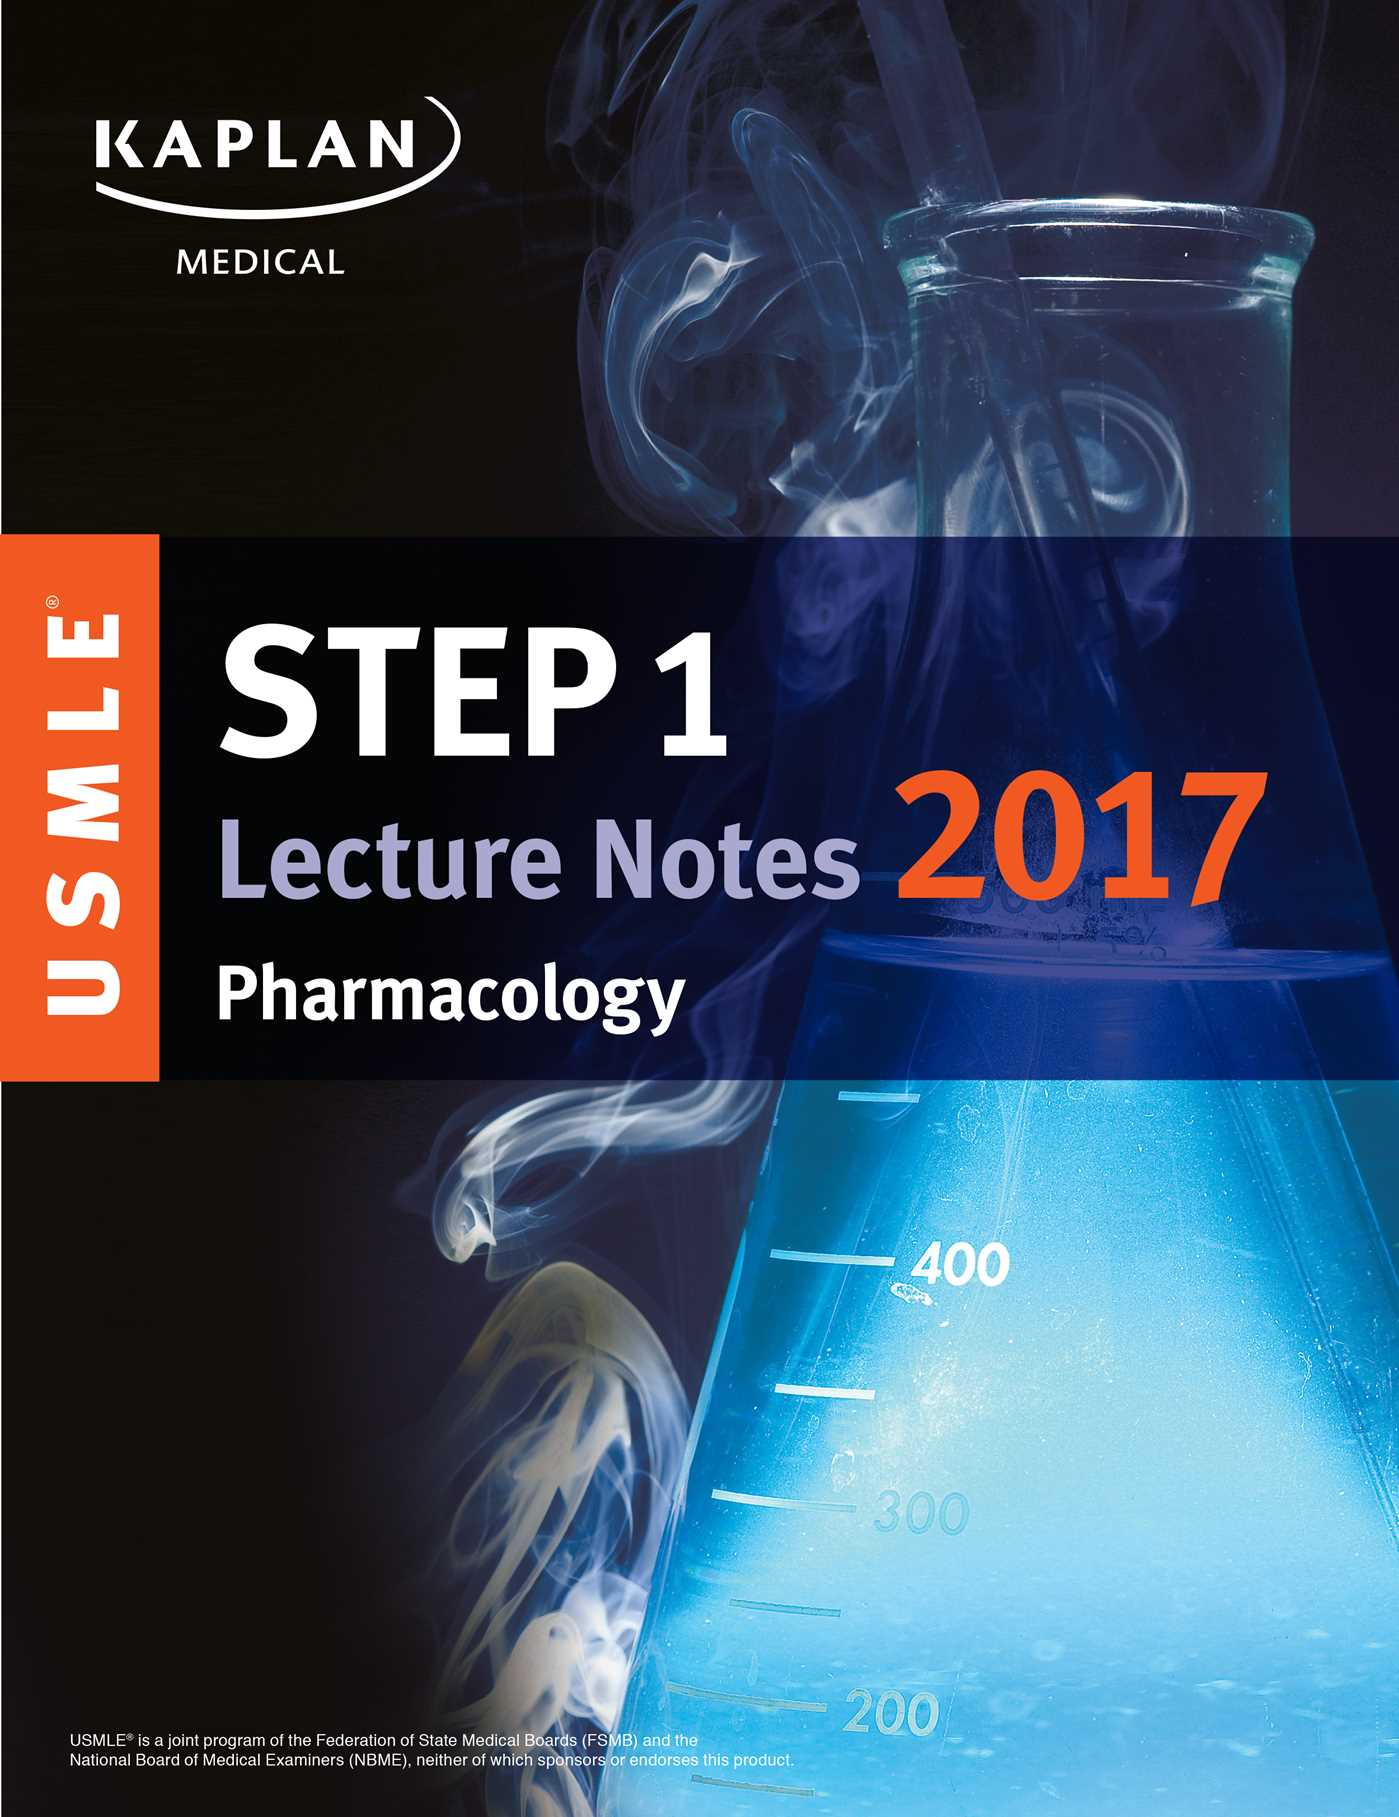 KAPLAN USMLE Step 1 Lecture Notes (PDF) eBooks Library